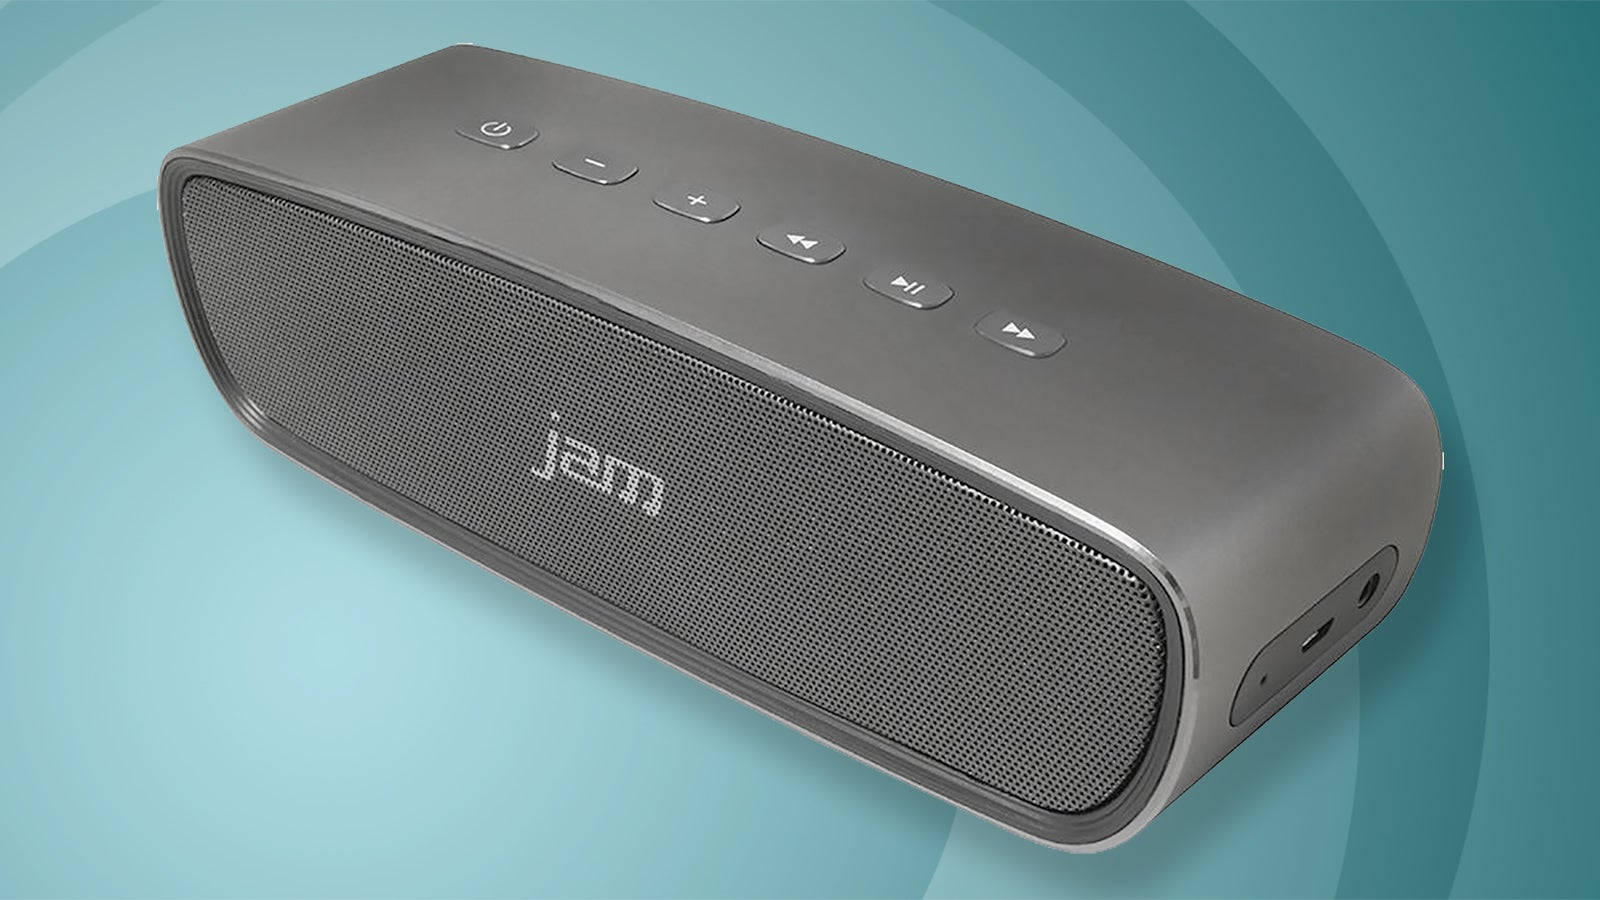 Jam Heavy Metal Hx P920 Review Trusted Reviews Jabra Sport Bluetooth Stereo Headset On Lg Wireless Speaker